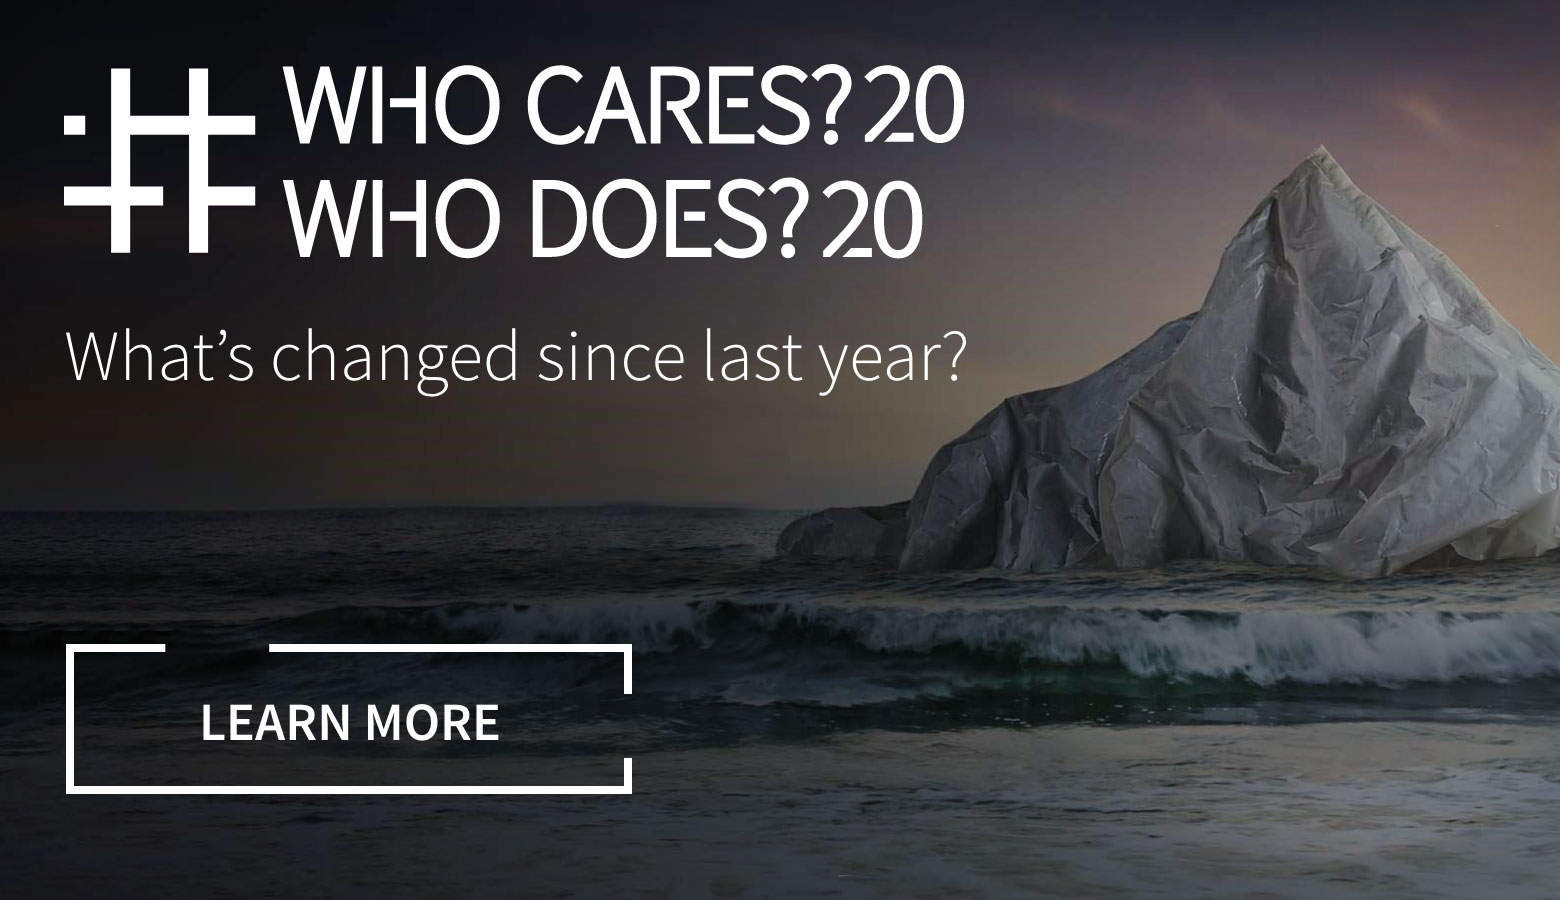 # Who cares? Who does?